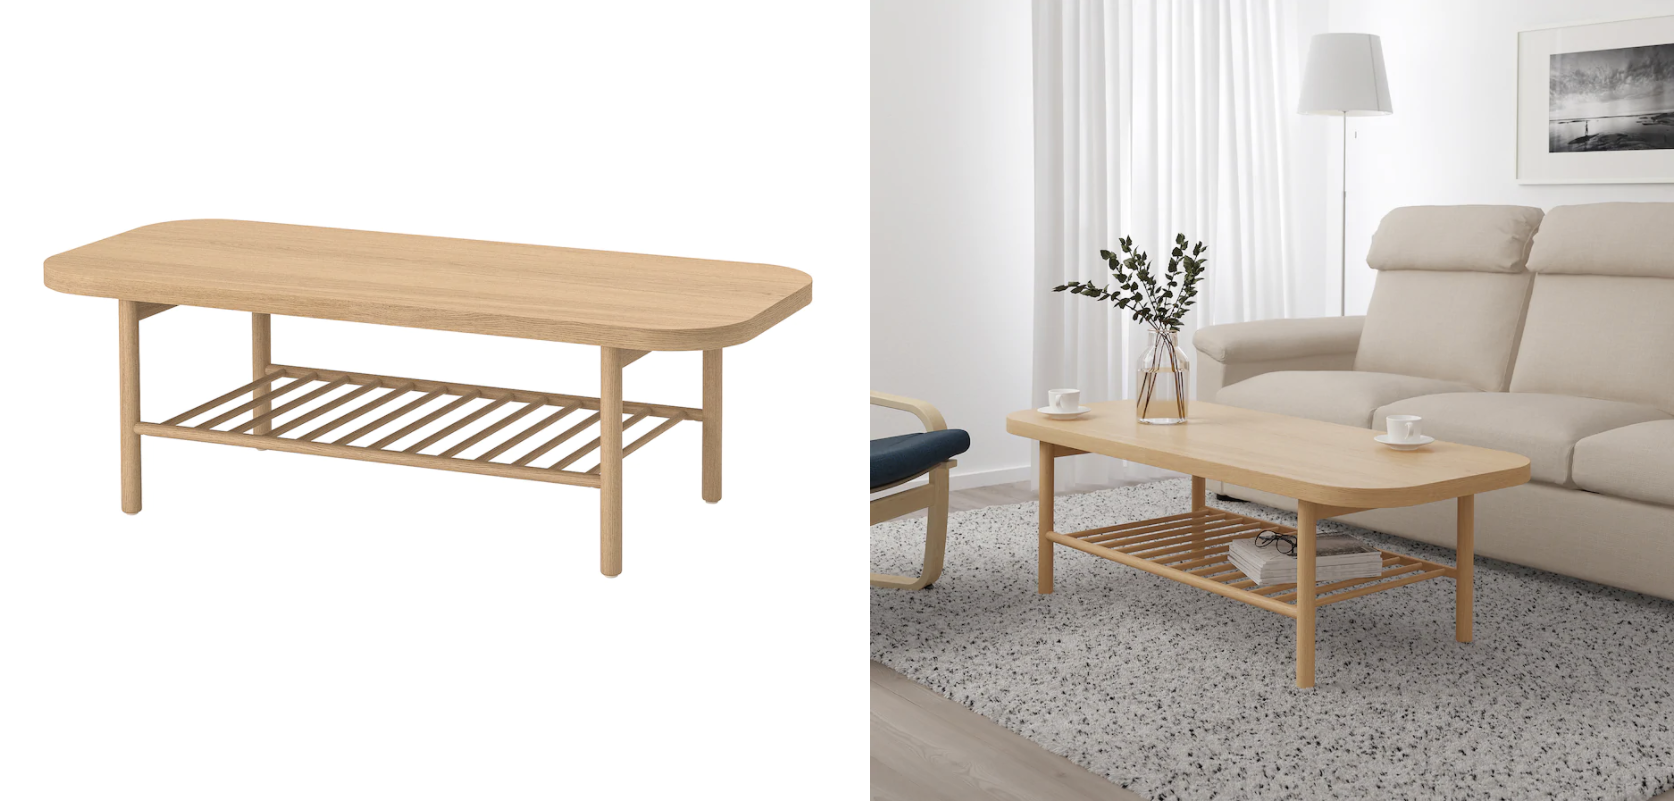 Listerby Coffee Table White Stained Oak 55 1 8x23 5 8 Ikea Coffee Table Coffee Table White Table [ 804 x 1676 Pixel ]